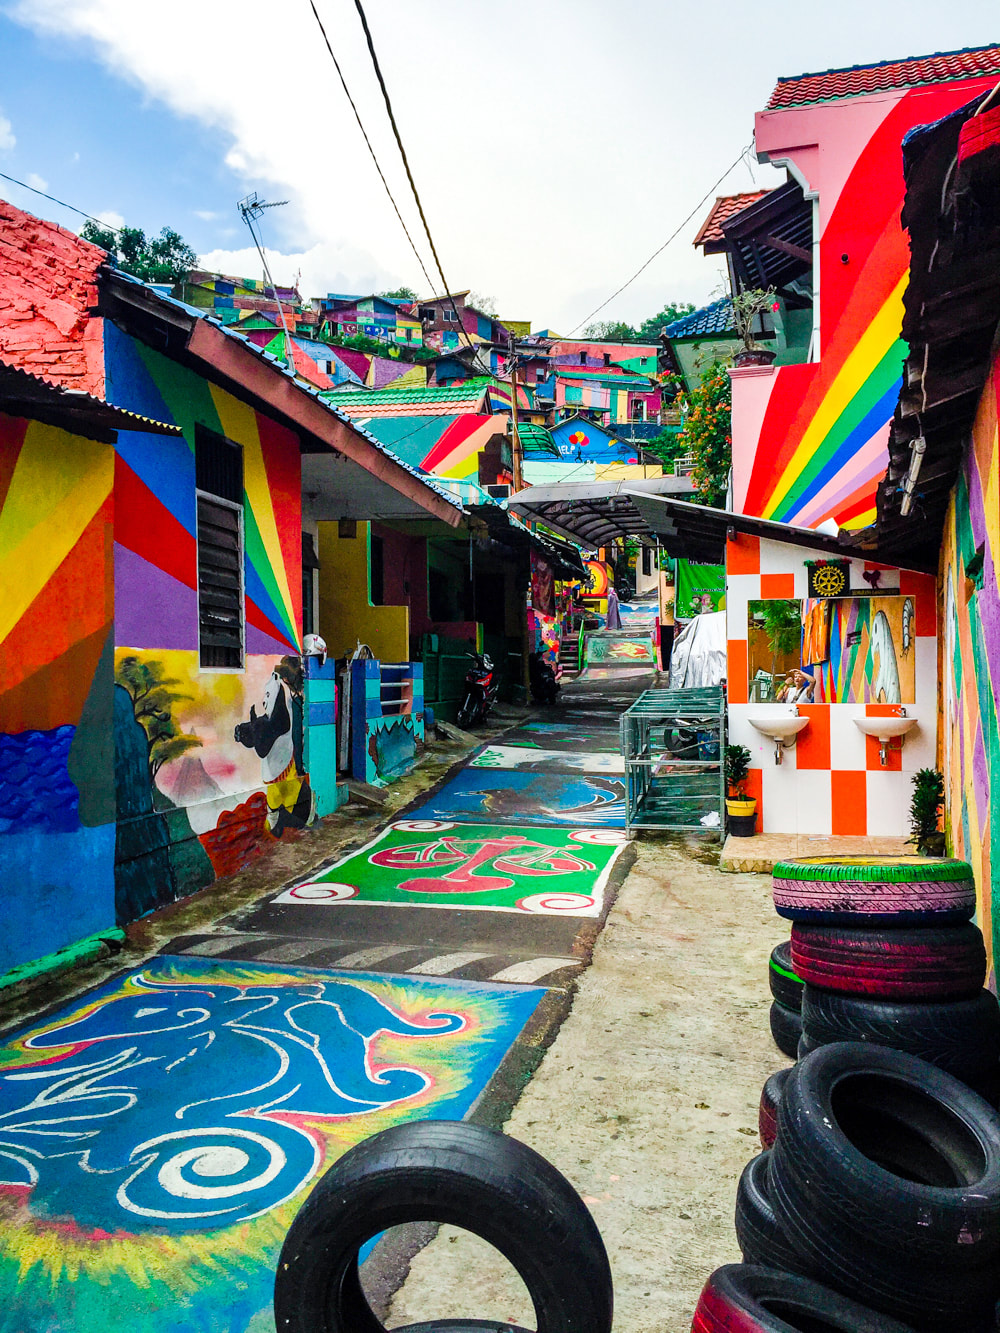 Colourful Kampung Pelangi (The Rainbow Village) Photo Diary. Wonosari, Semarang, Java, Indonesia.